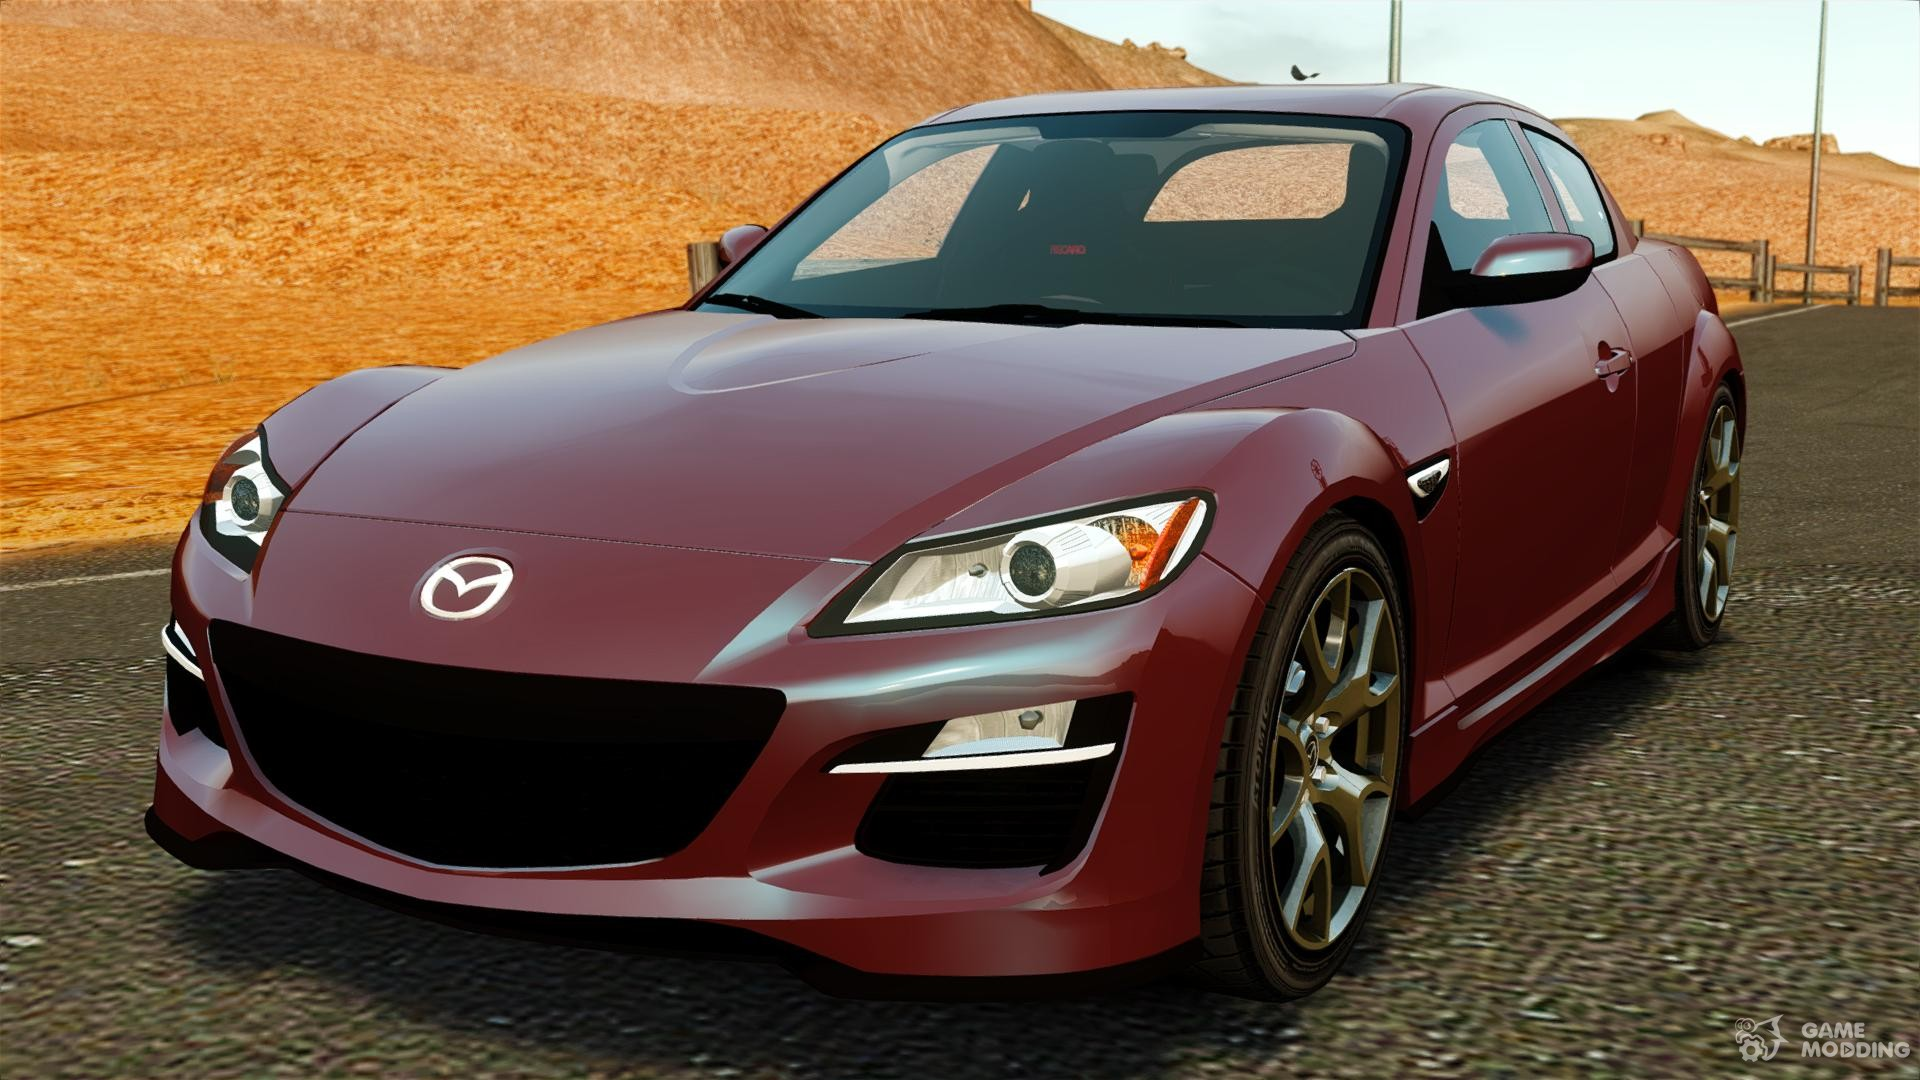 rx-8 r3 2011 for gta 4